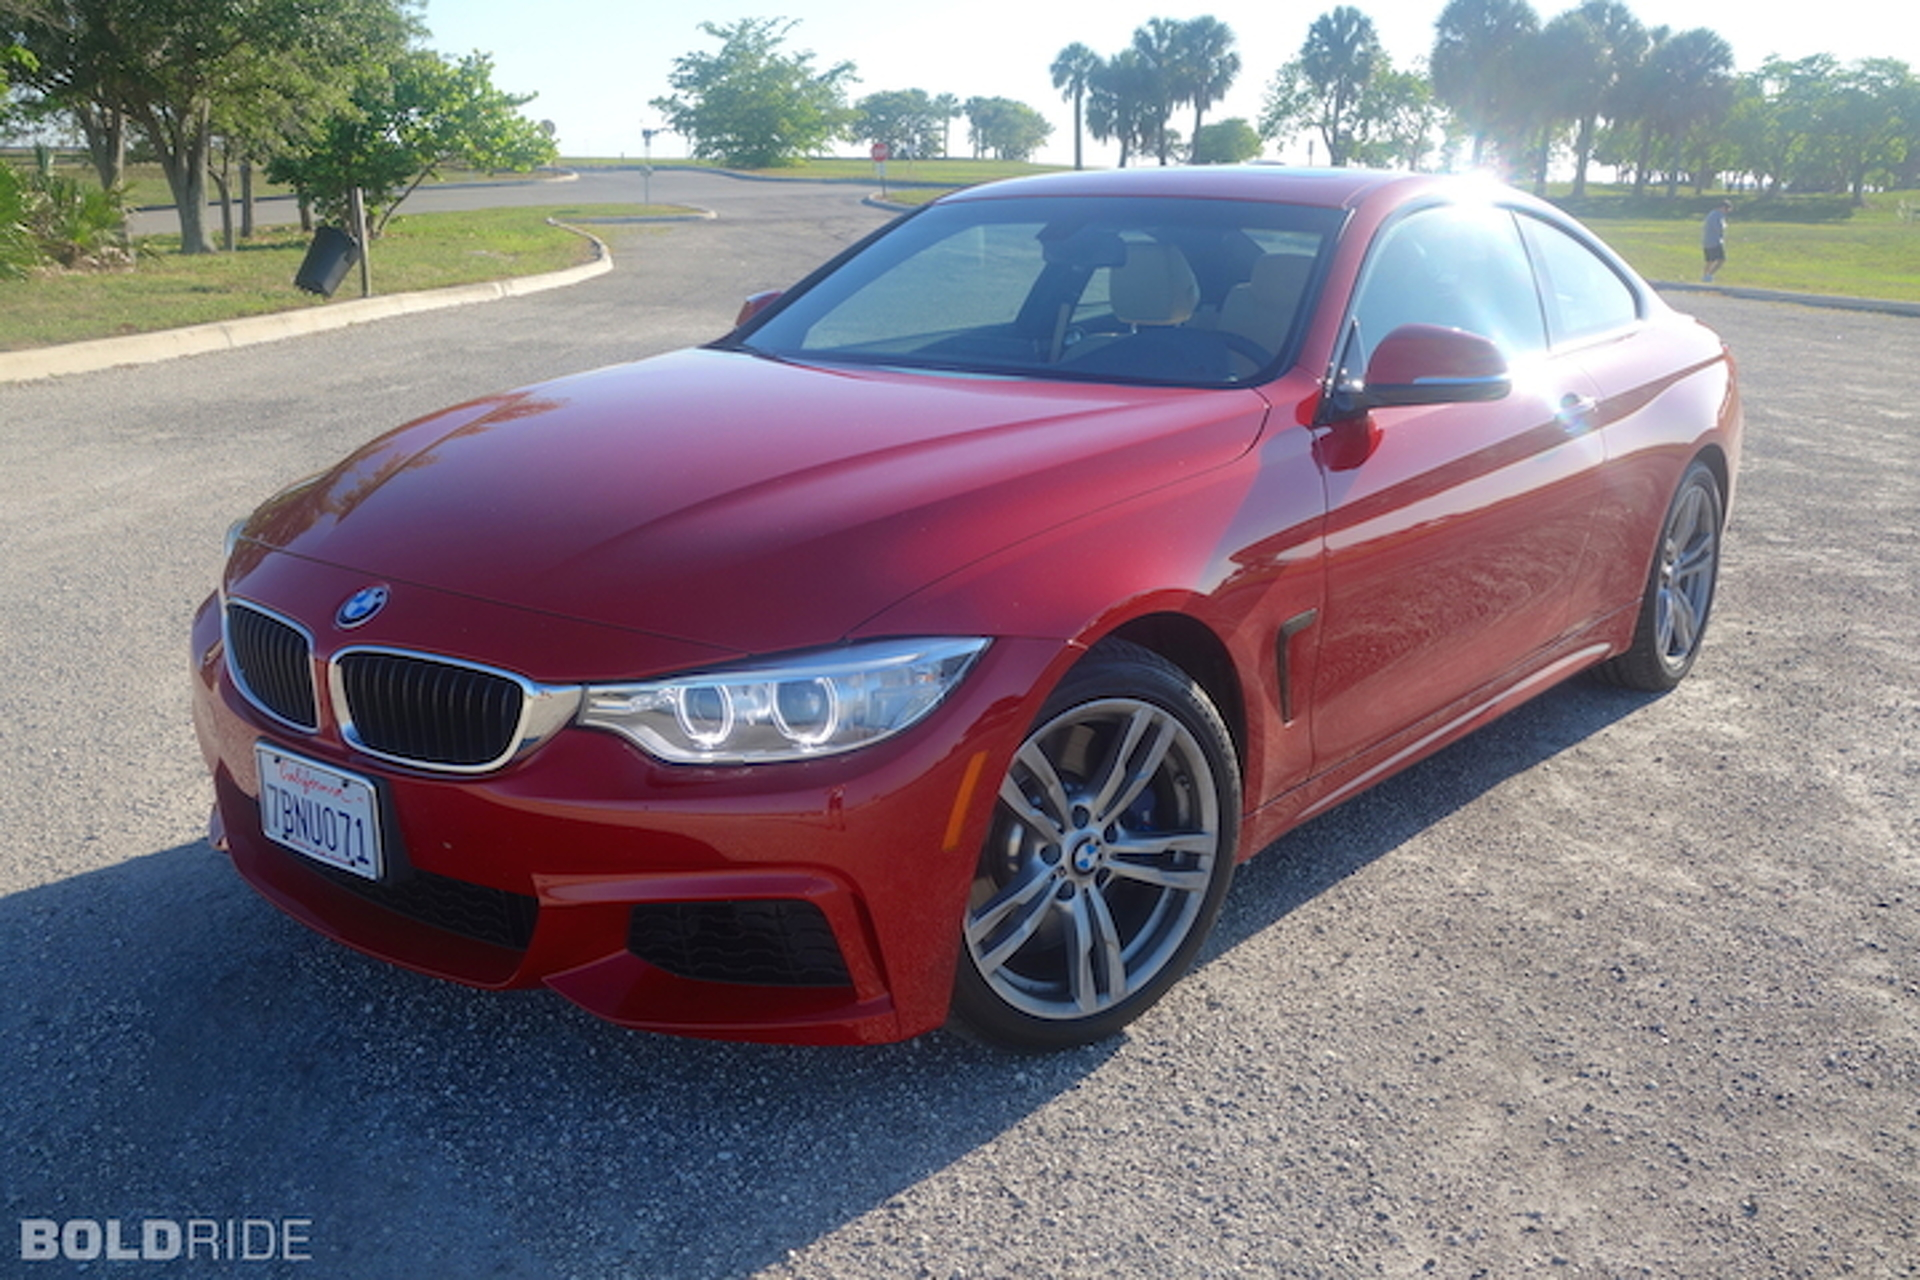 2014 Bmw 435I Review Your Sexy, Overpriced Ex-Girlfriend-6563